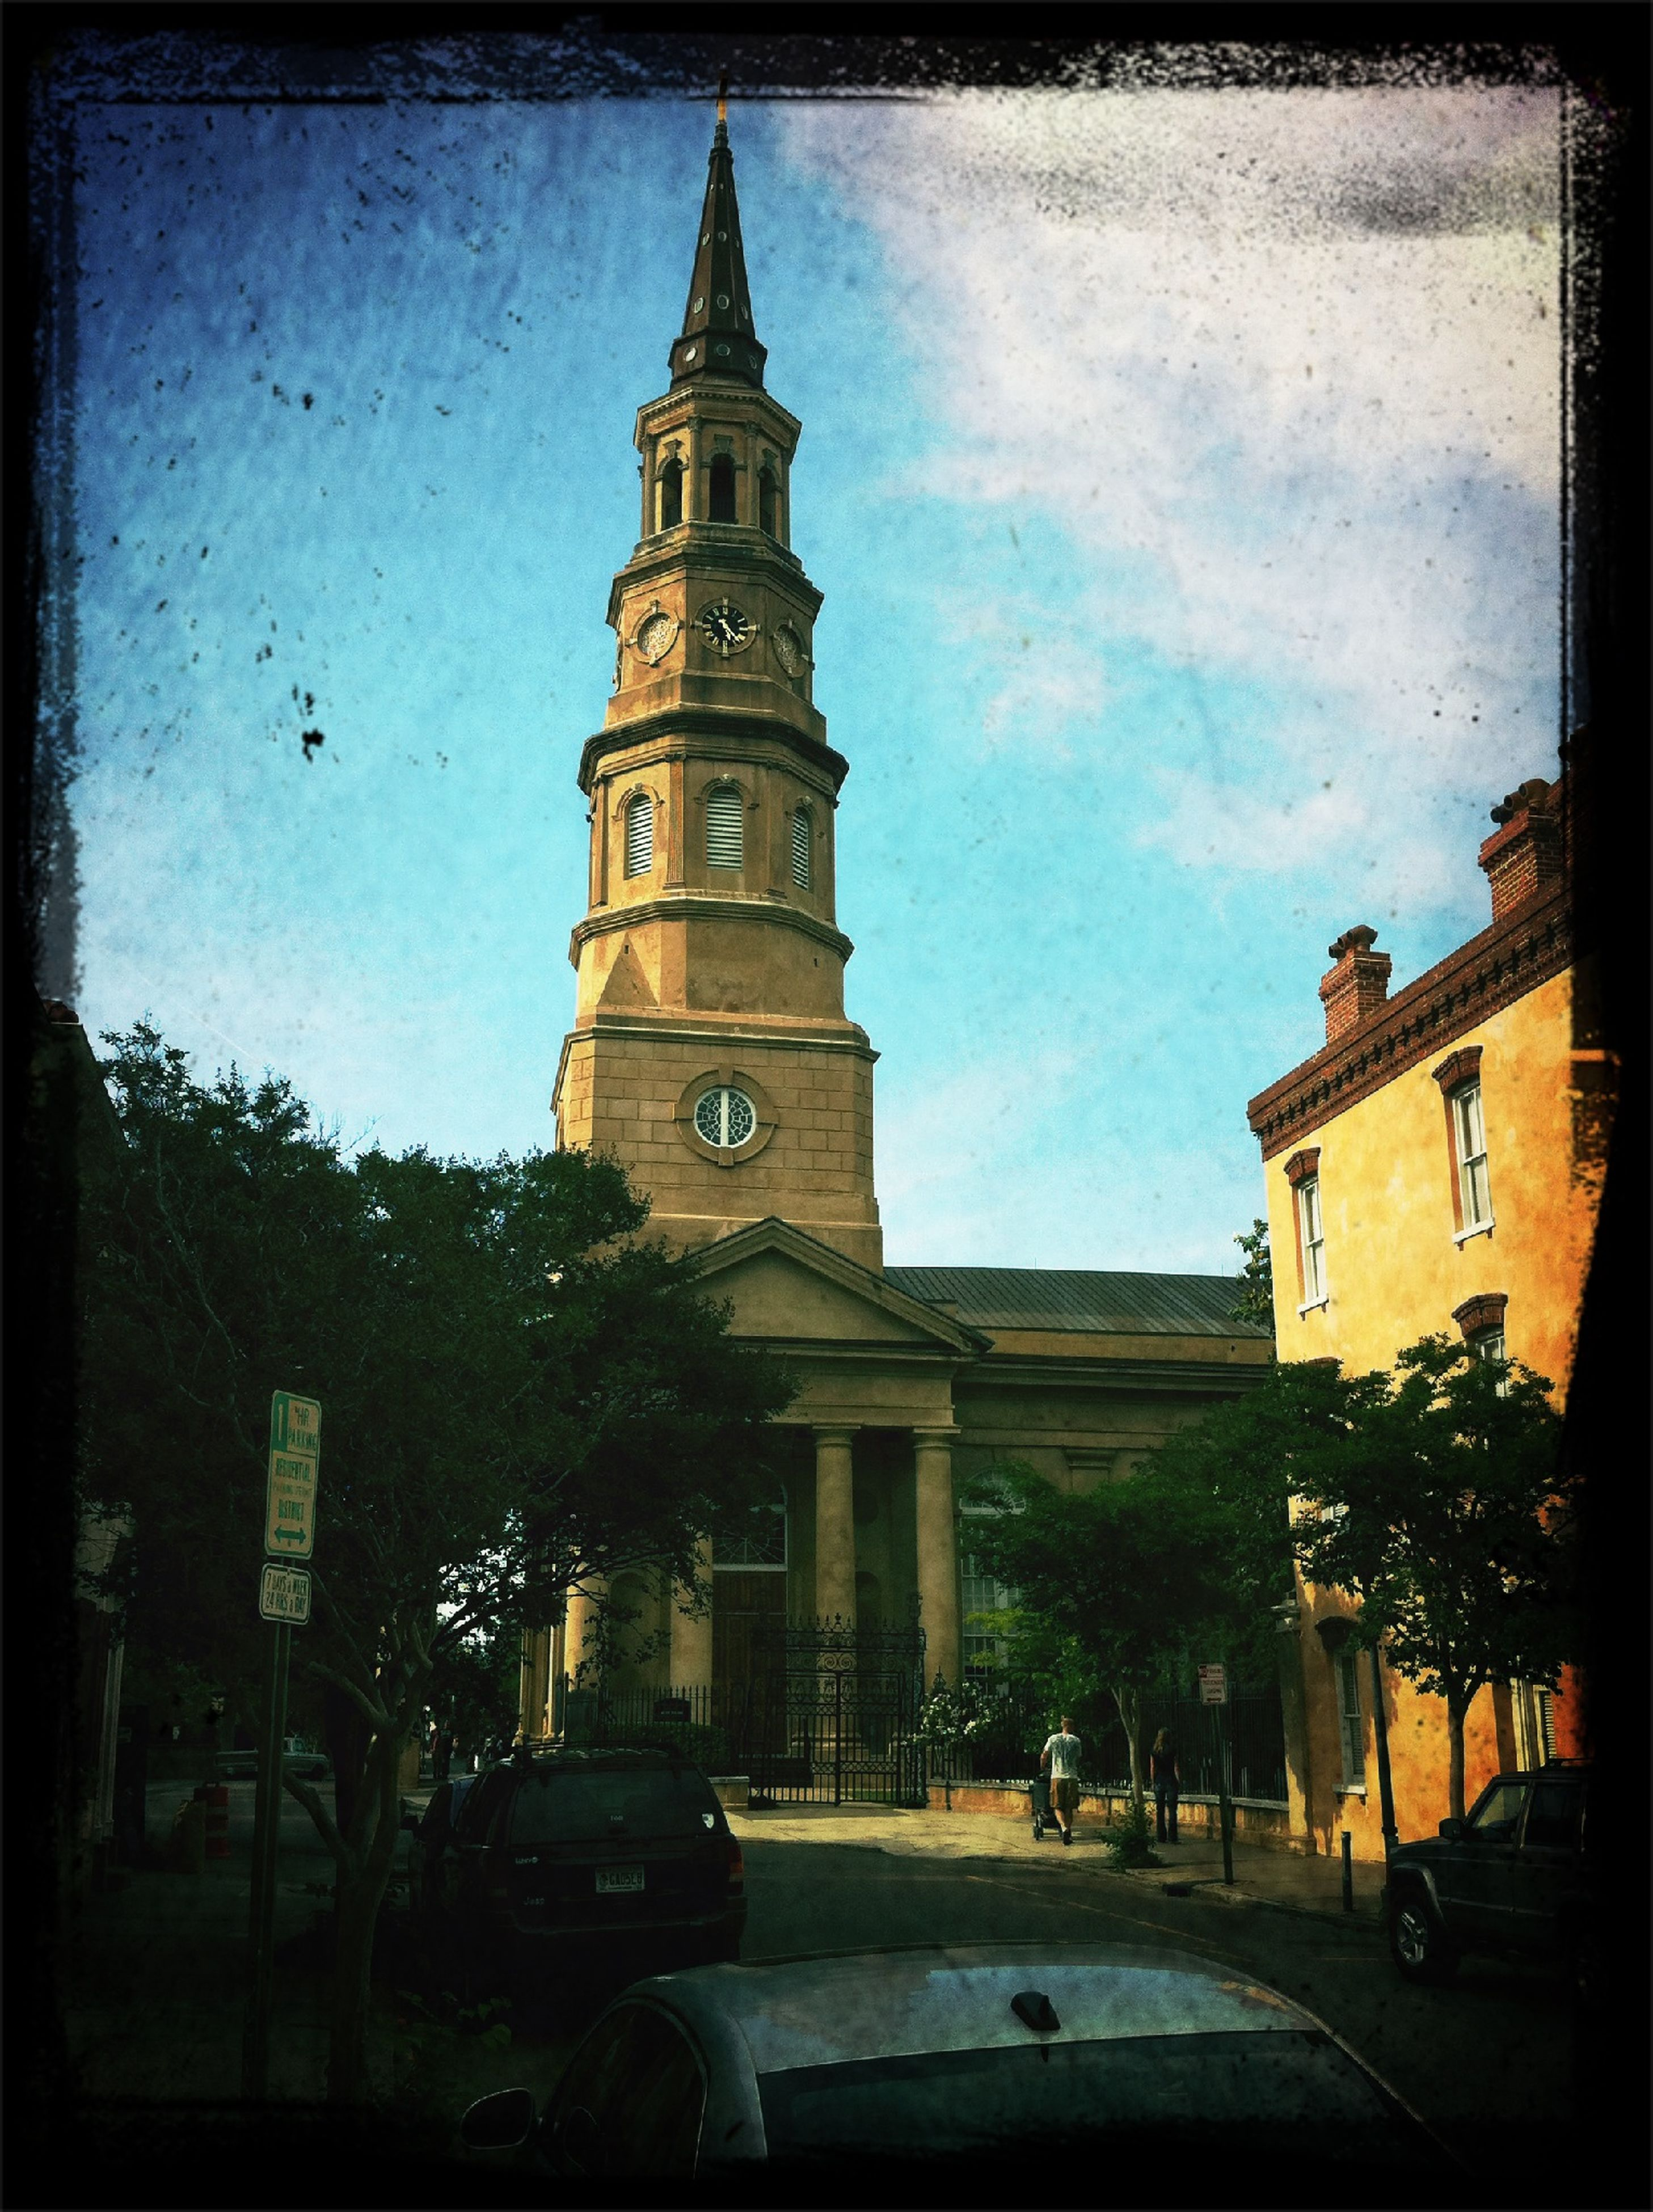 building exterior, architecture, built structure, transfer print, auto post production filter, sky, tree, low angle view, city, tower, clock tower, history, church, incidental people, religion, street, travel destinations, outdoors, car, place of worship